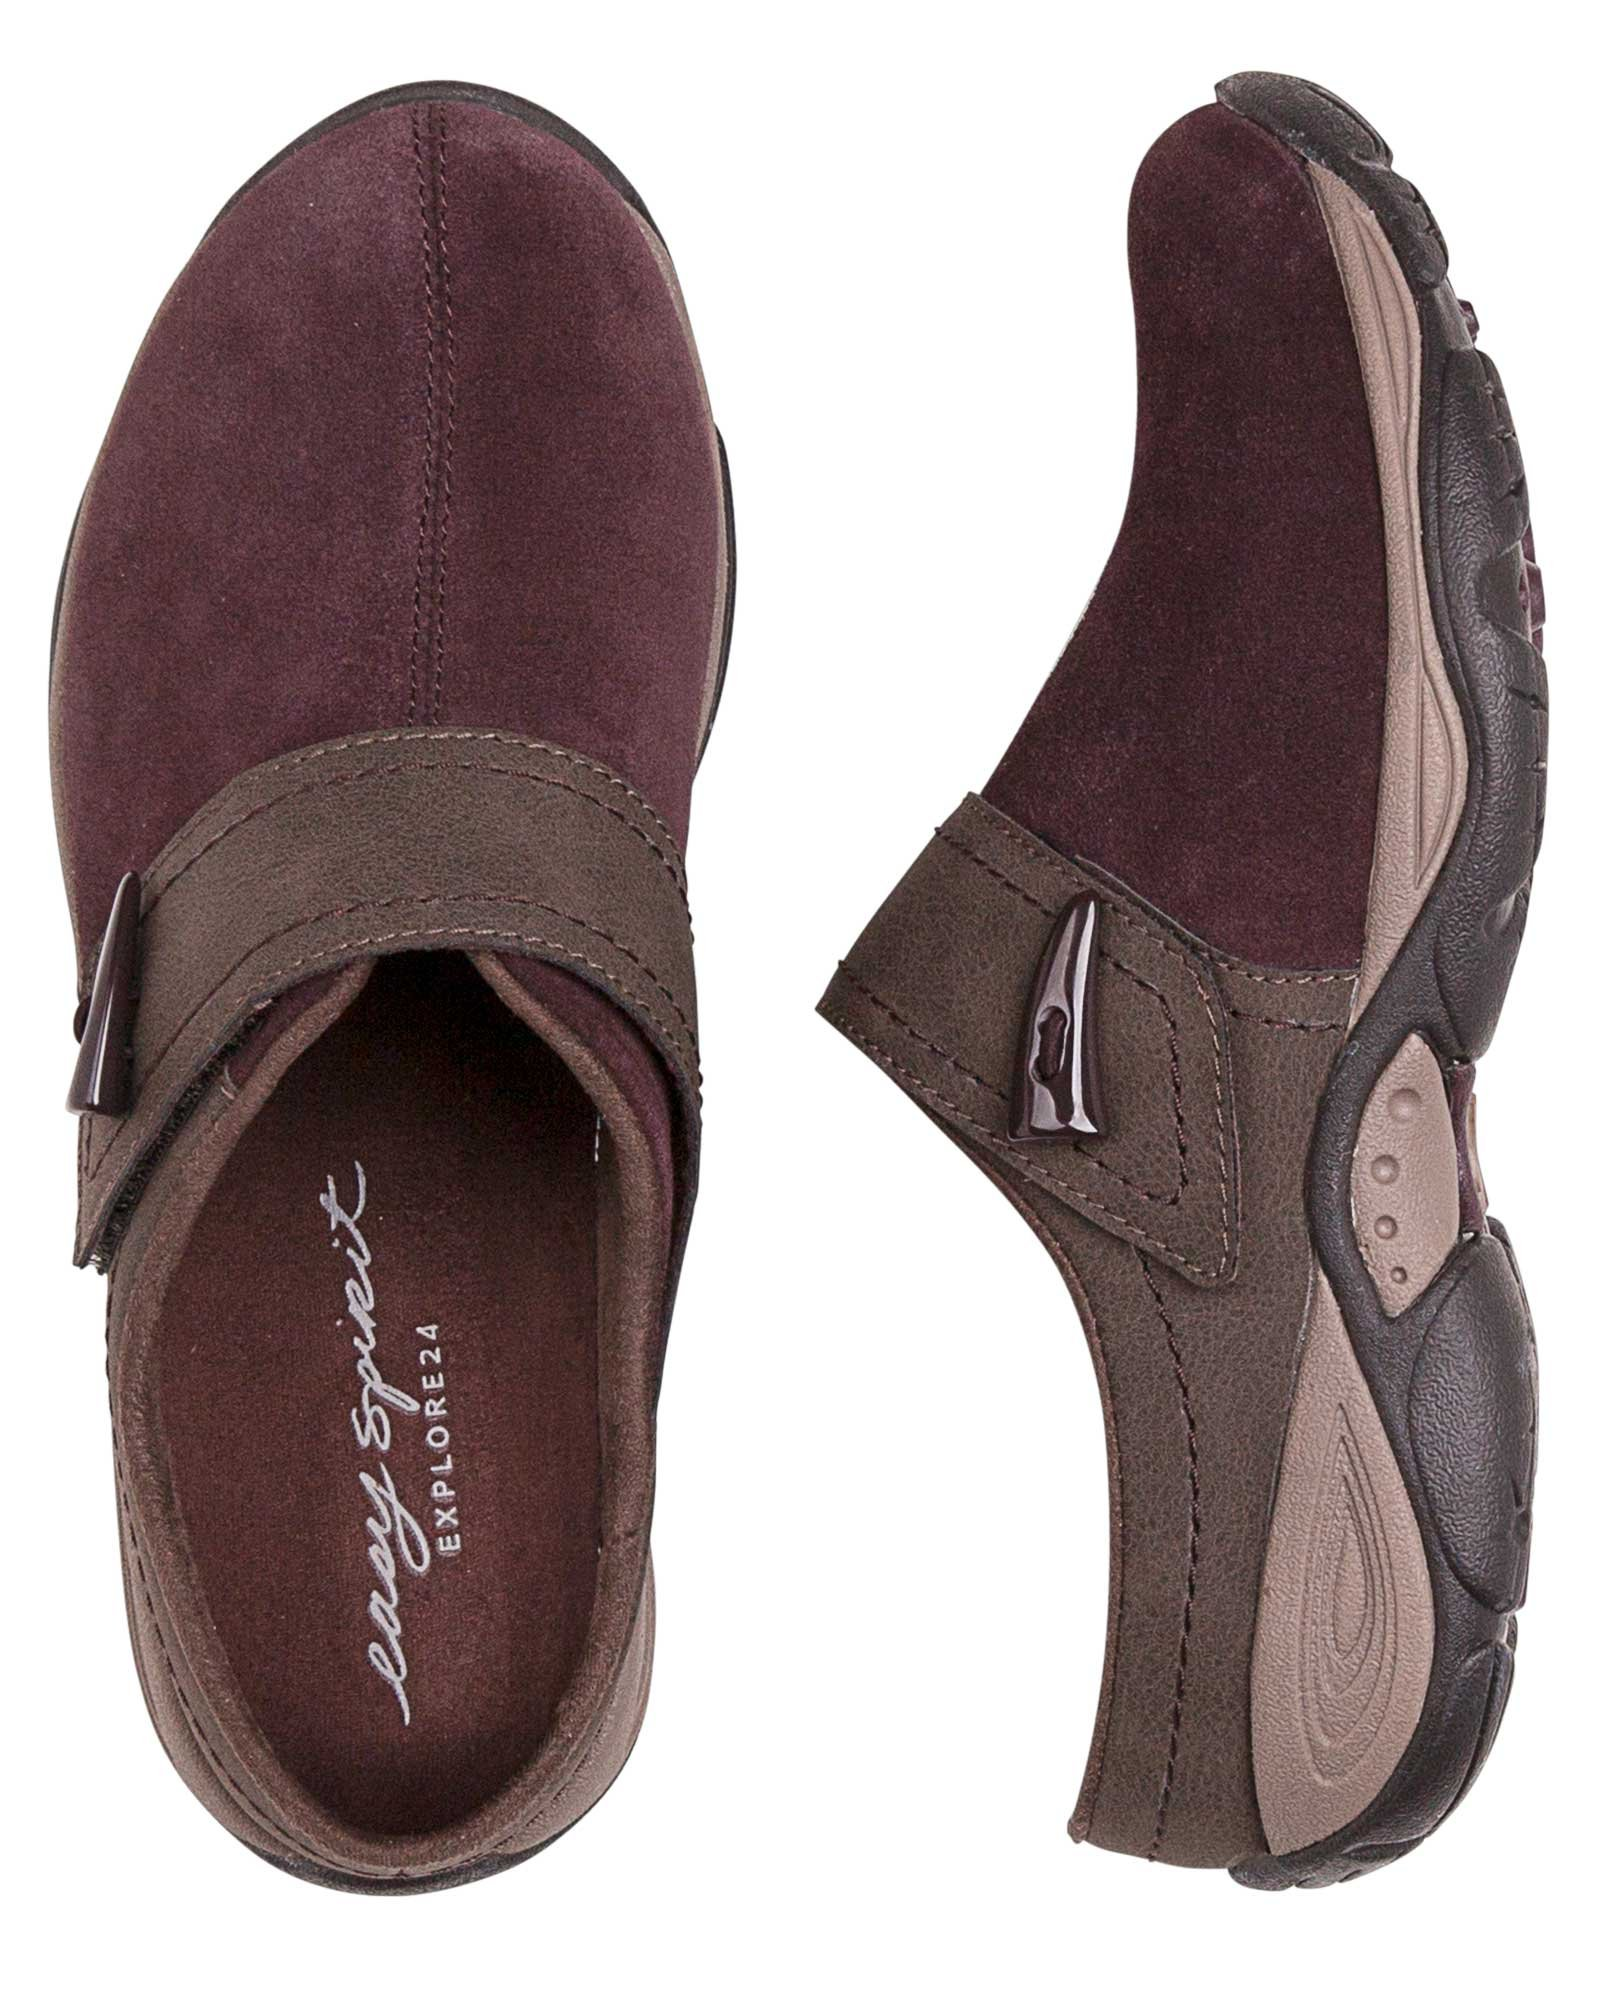 Easy Spirit Womens Eliana Slip-On Shoe, Vine/Chestnut, 10 C/D US